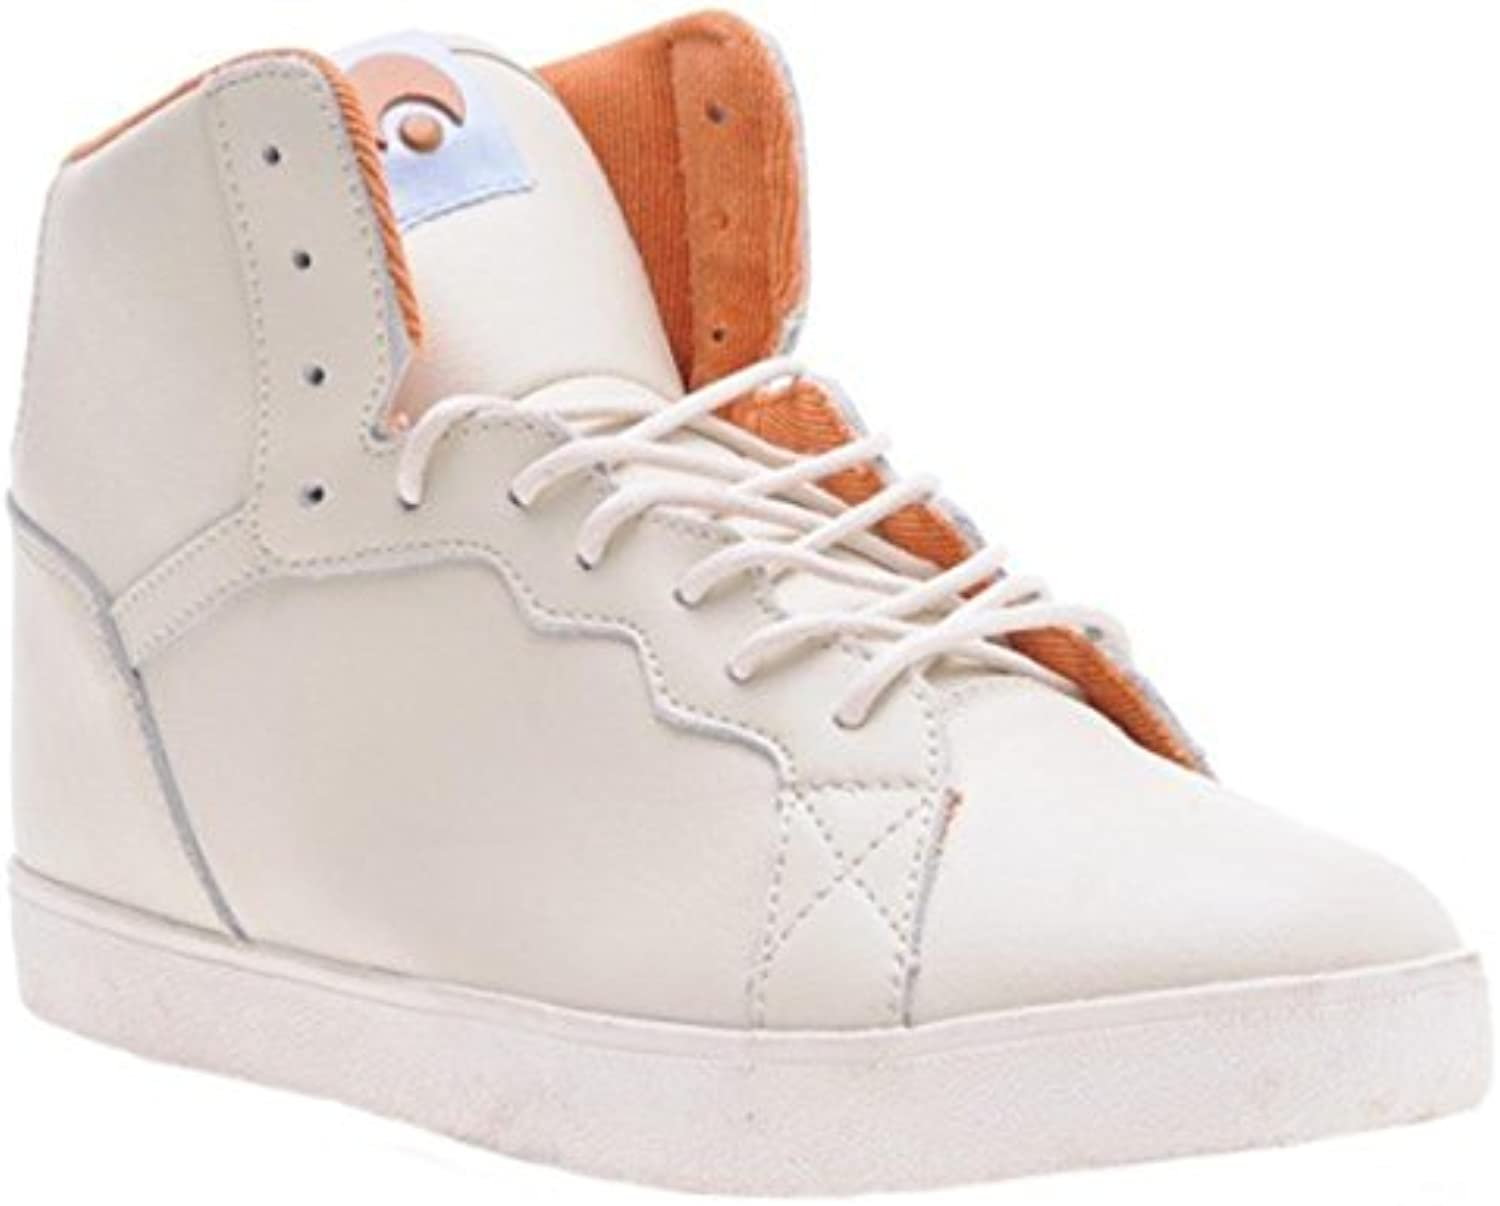 osiris patiner chaussures motif gvl gvl gvl / orange / Bleu  b00eqkc1so parent cfbb93